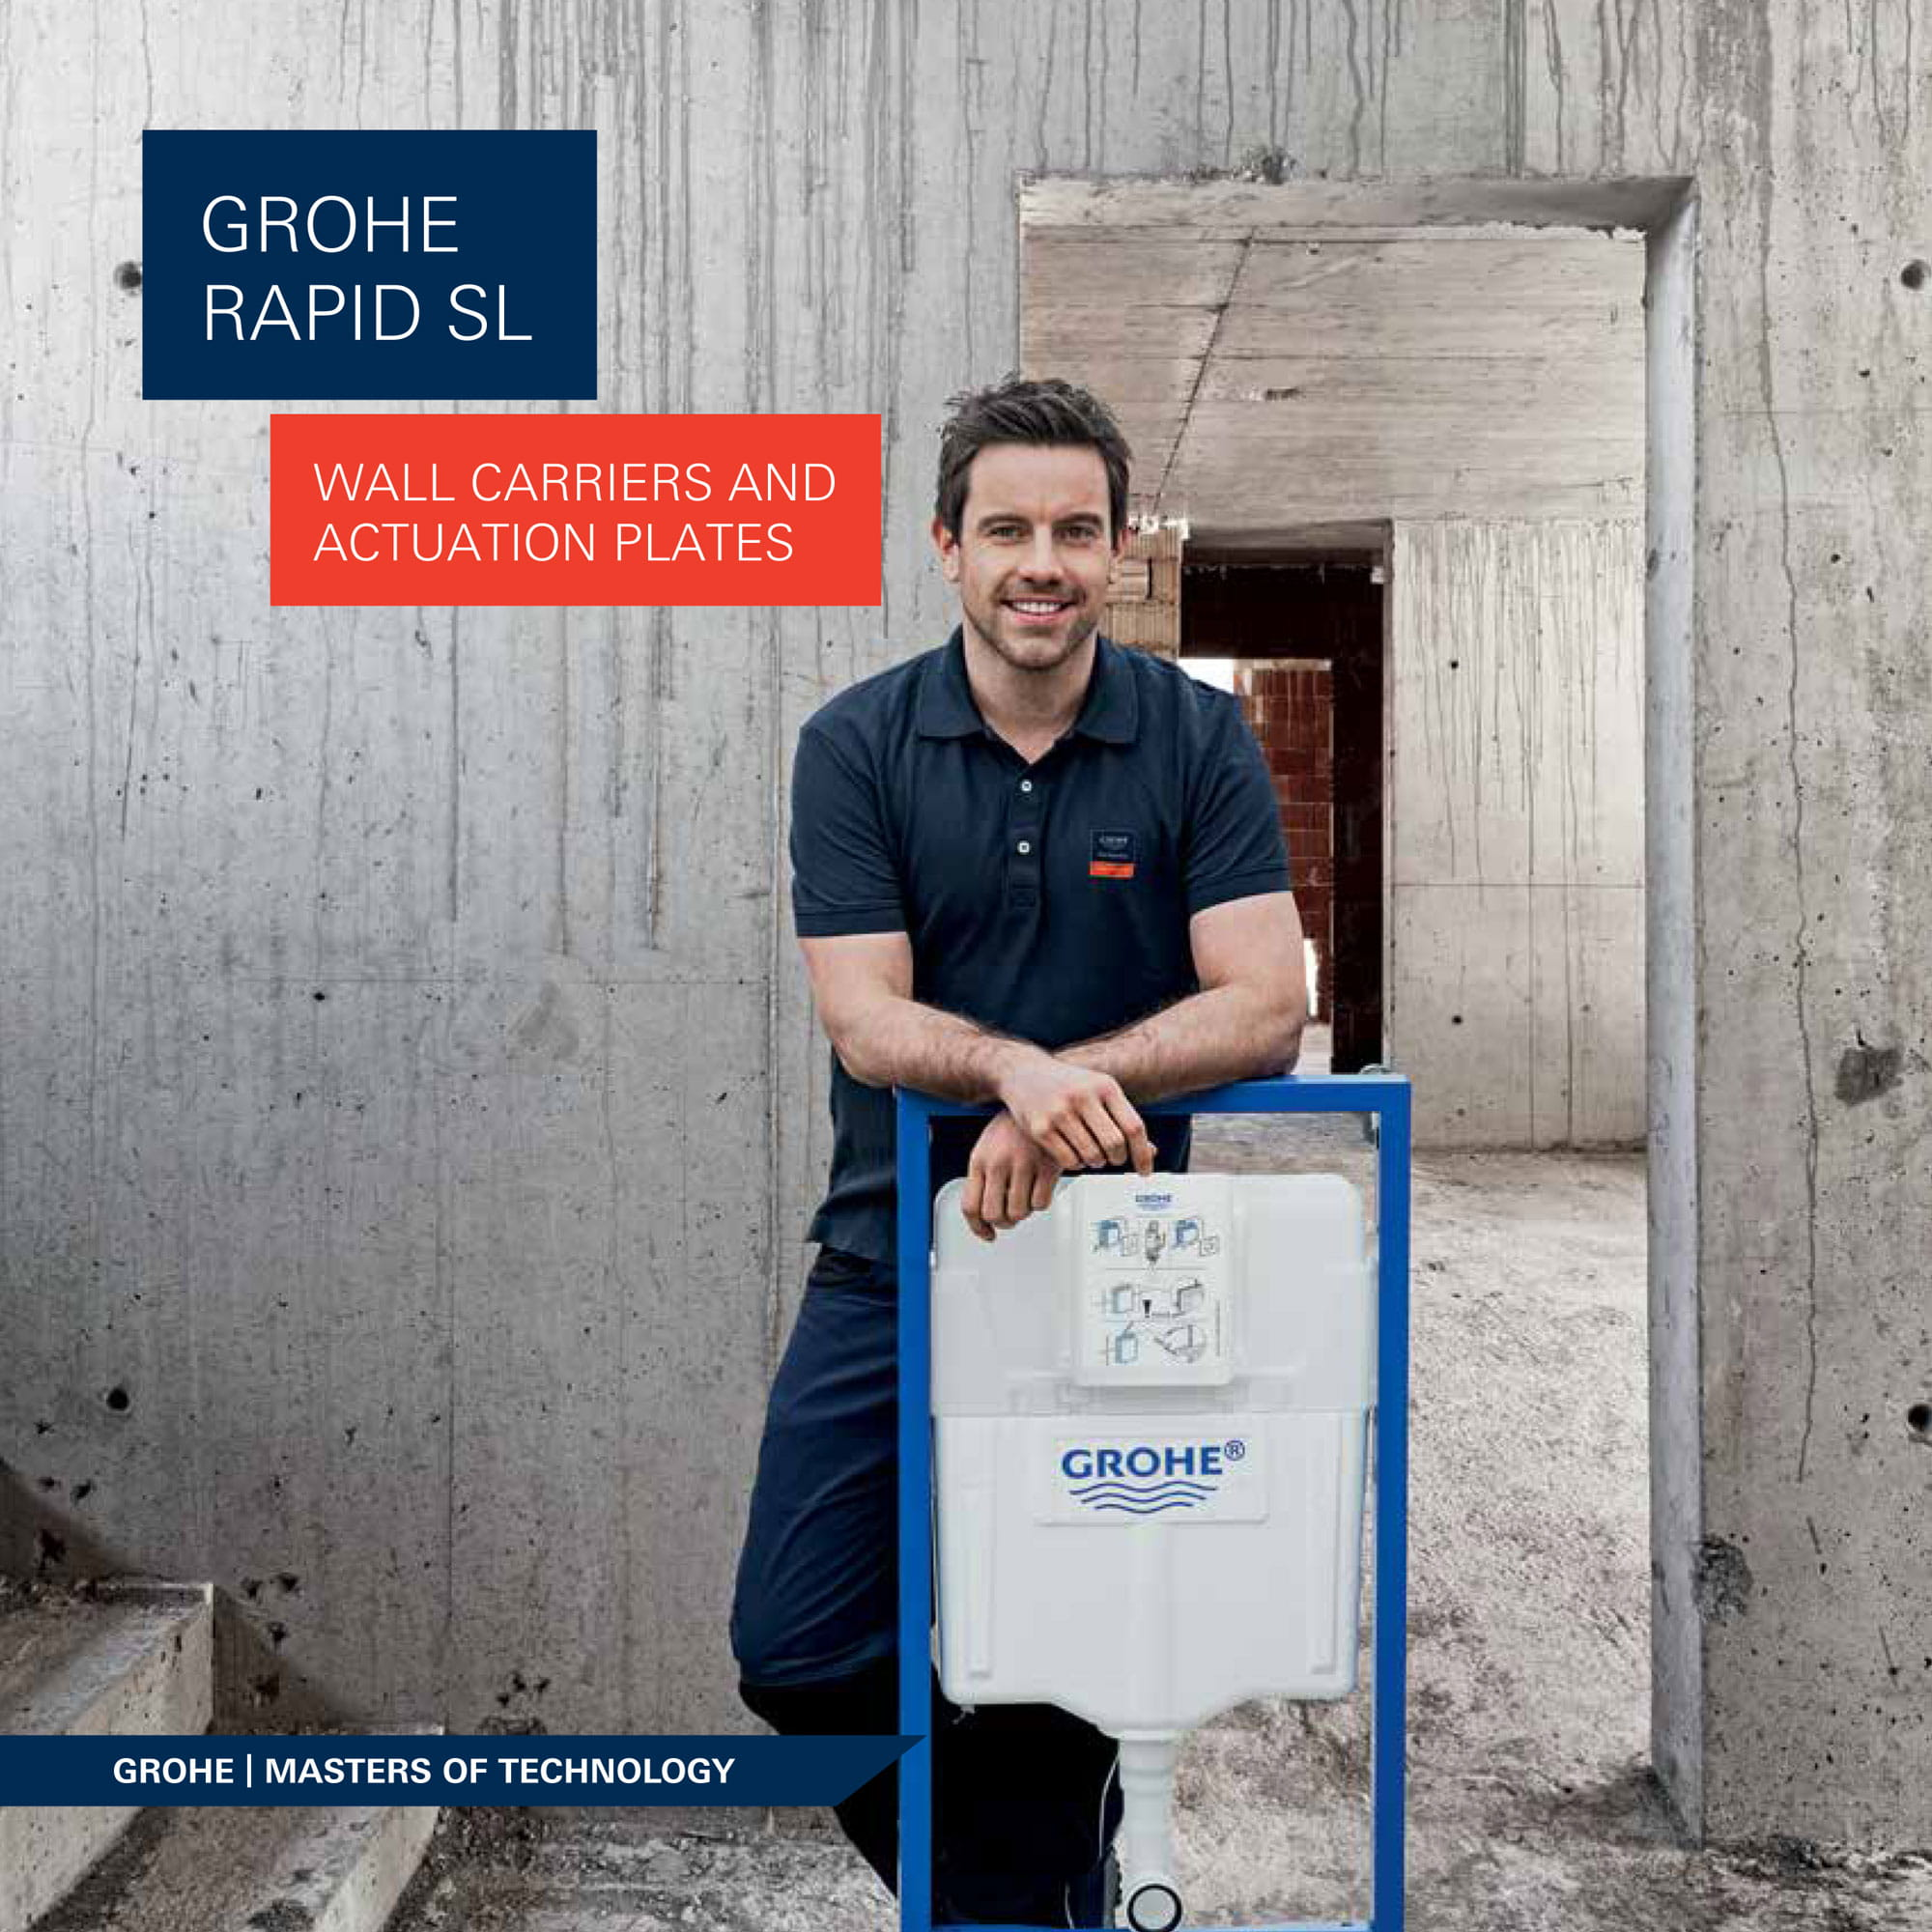 Travailleur GROHE tenant un support mural